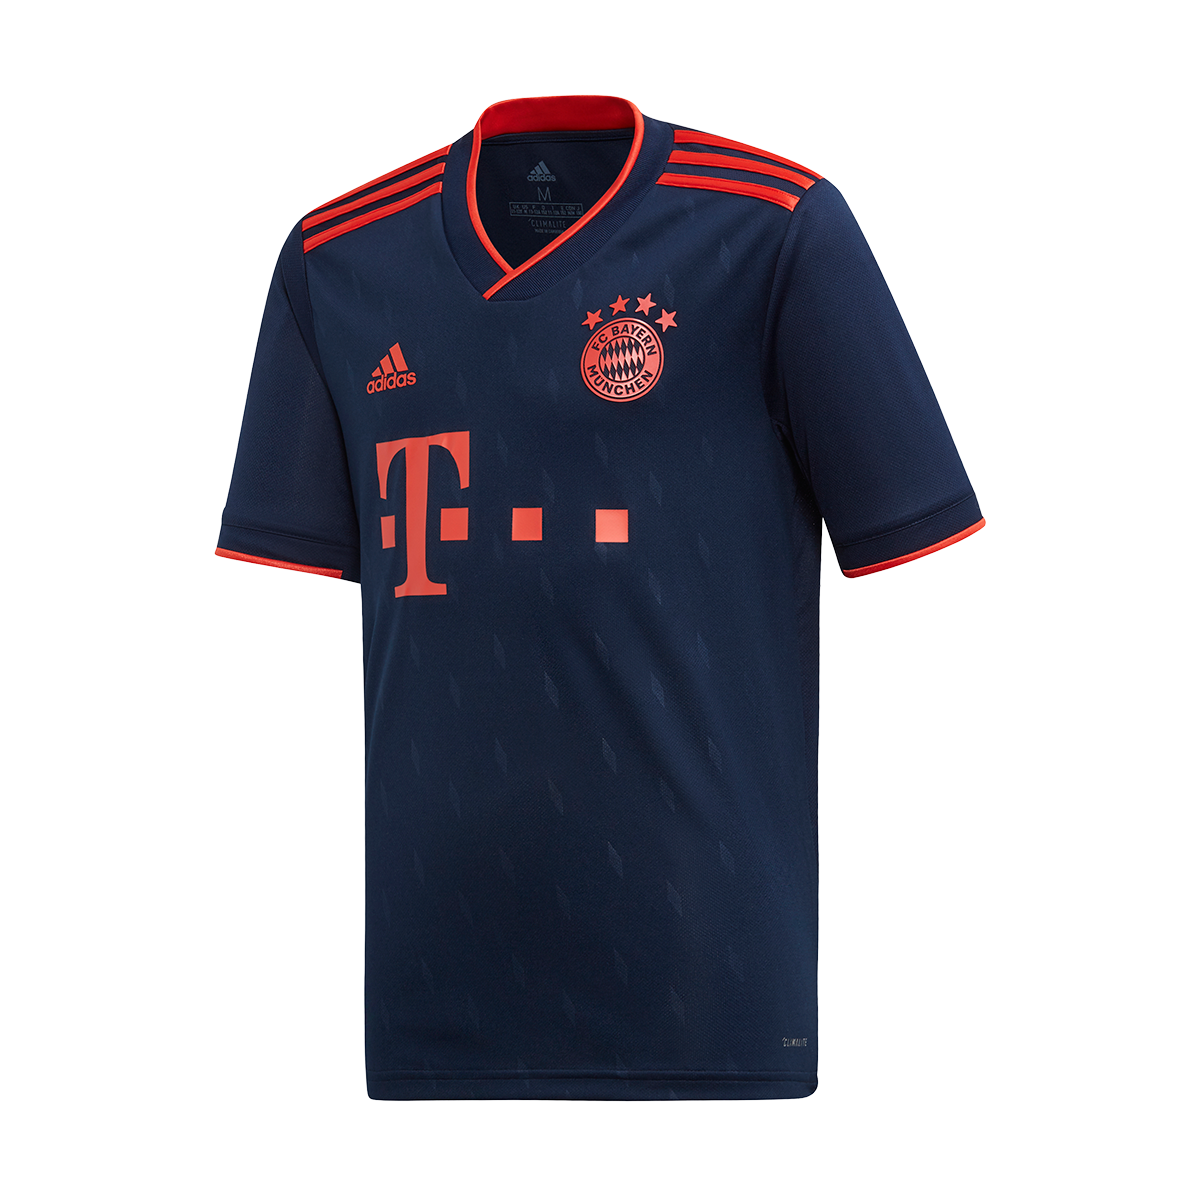 Jersey Adidas Kids Bayern Munich 2019 2020 Third Collegiate Navy Bright Red Football Store Futbol Emotion